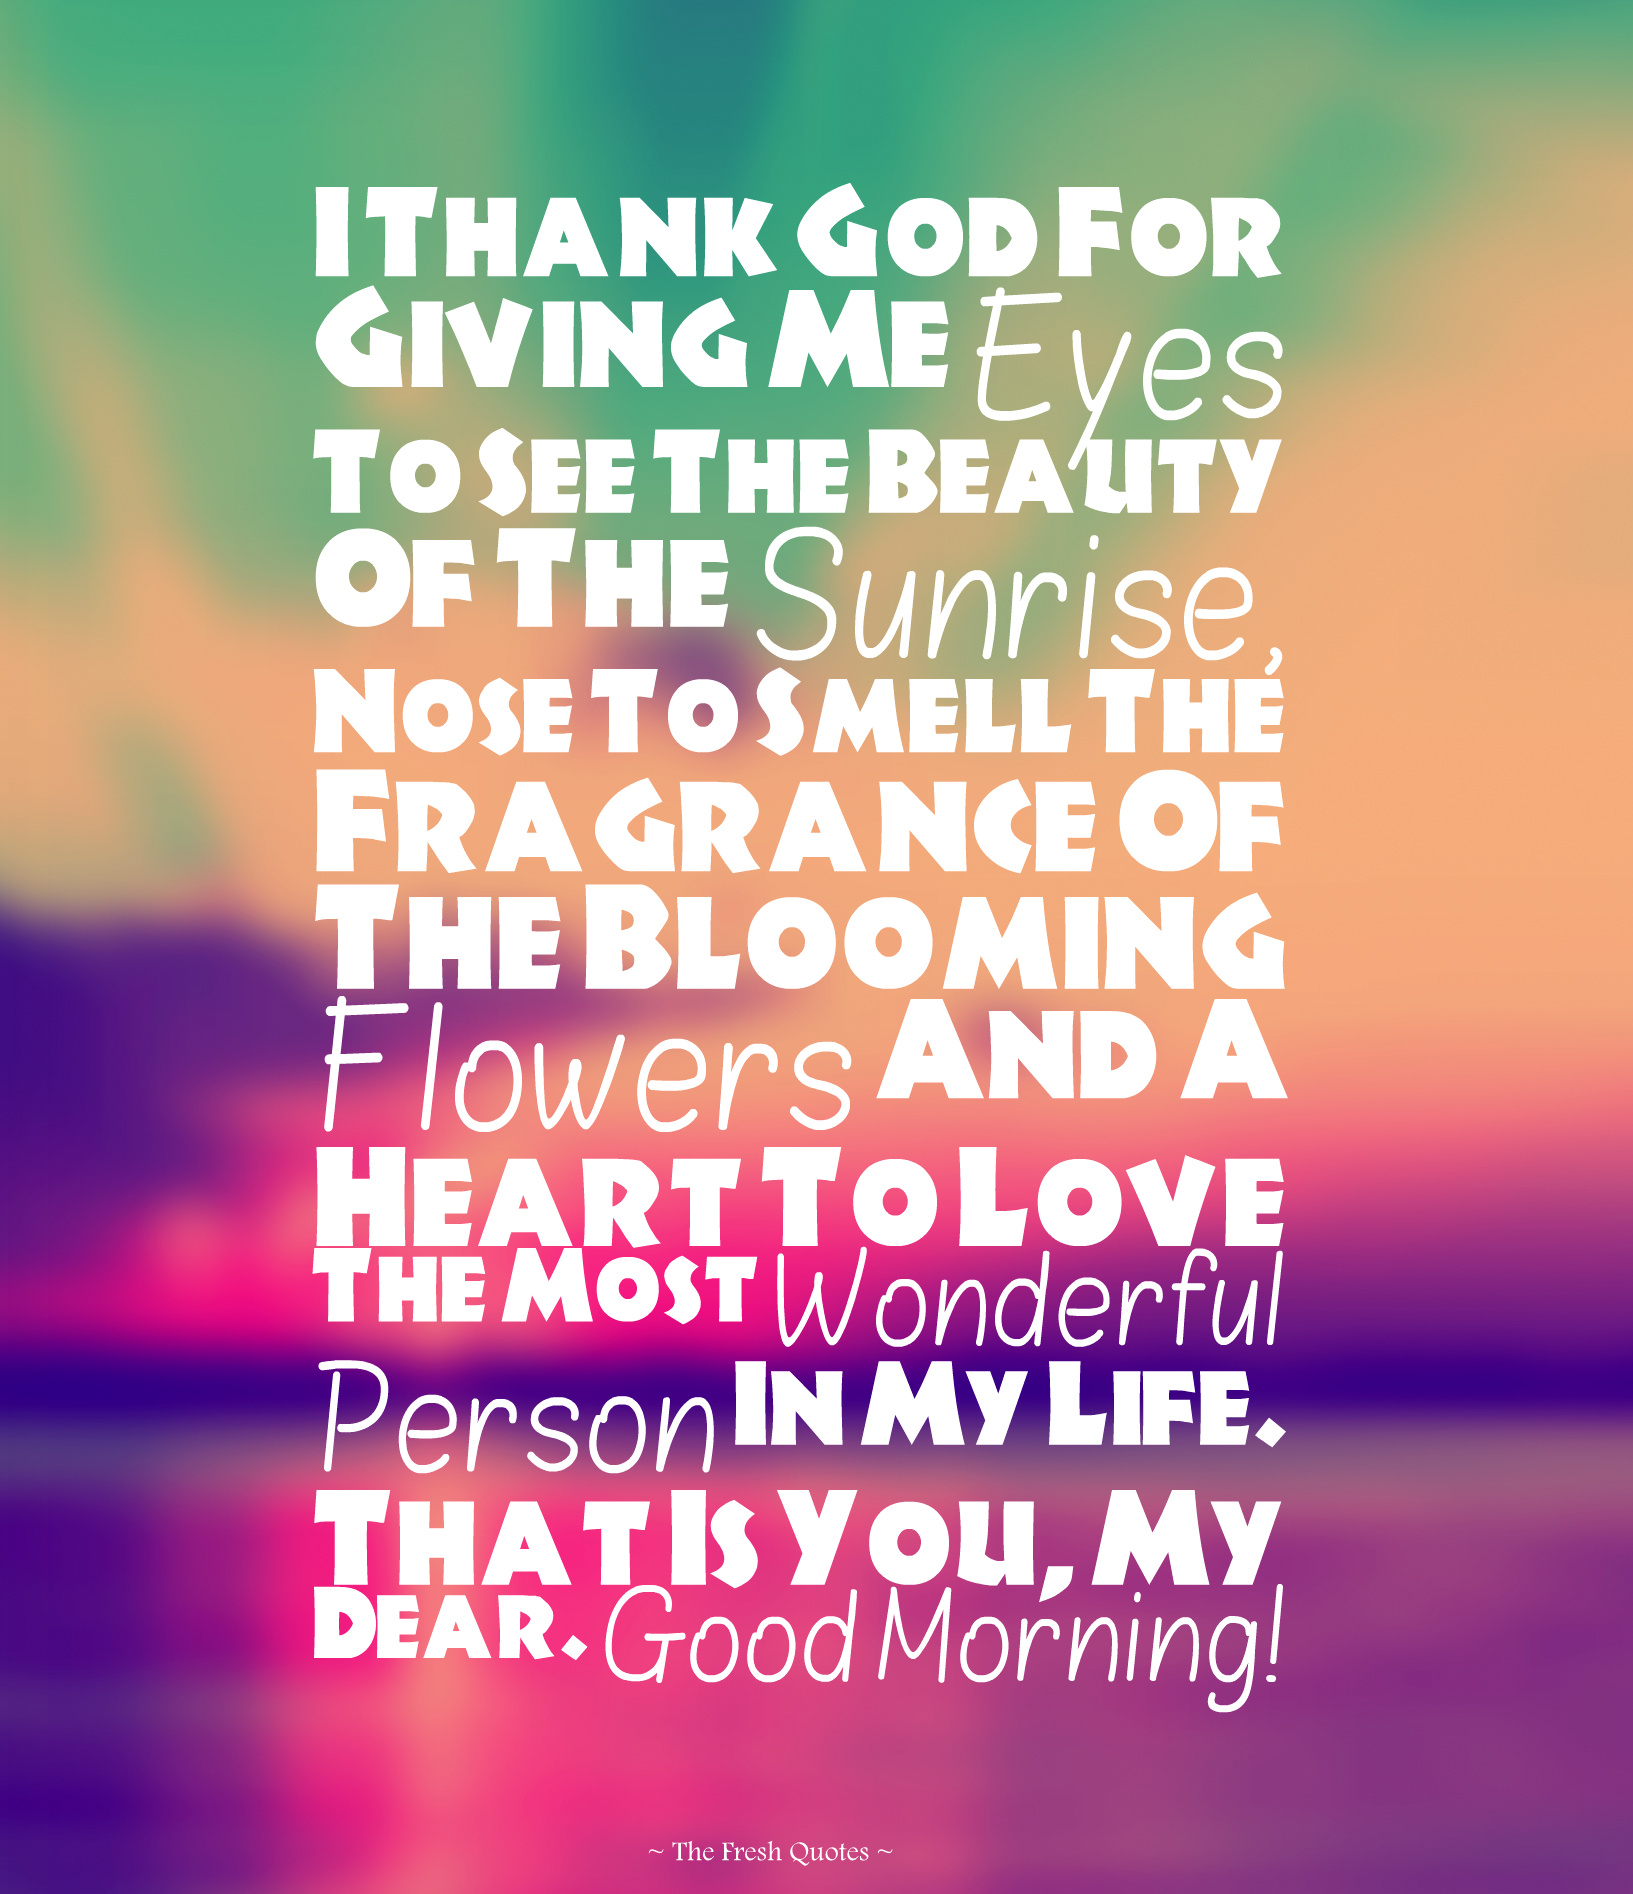 Good morning love images sf wallpaper cute romantic good morning wishes with beautiful images quotes izmirmasajfo